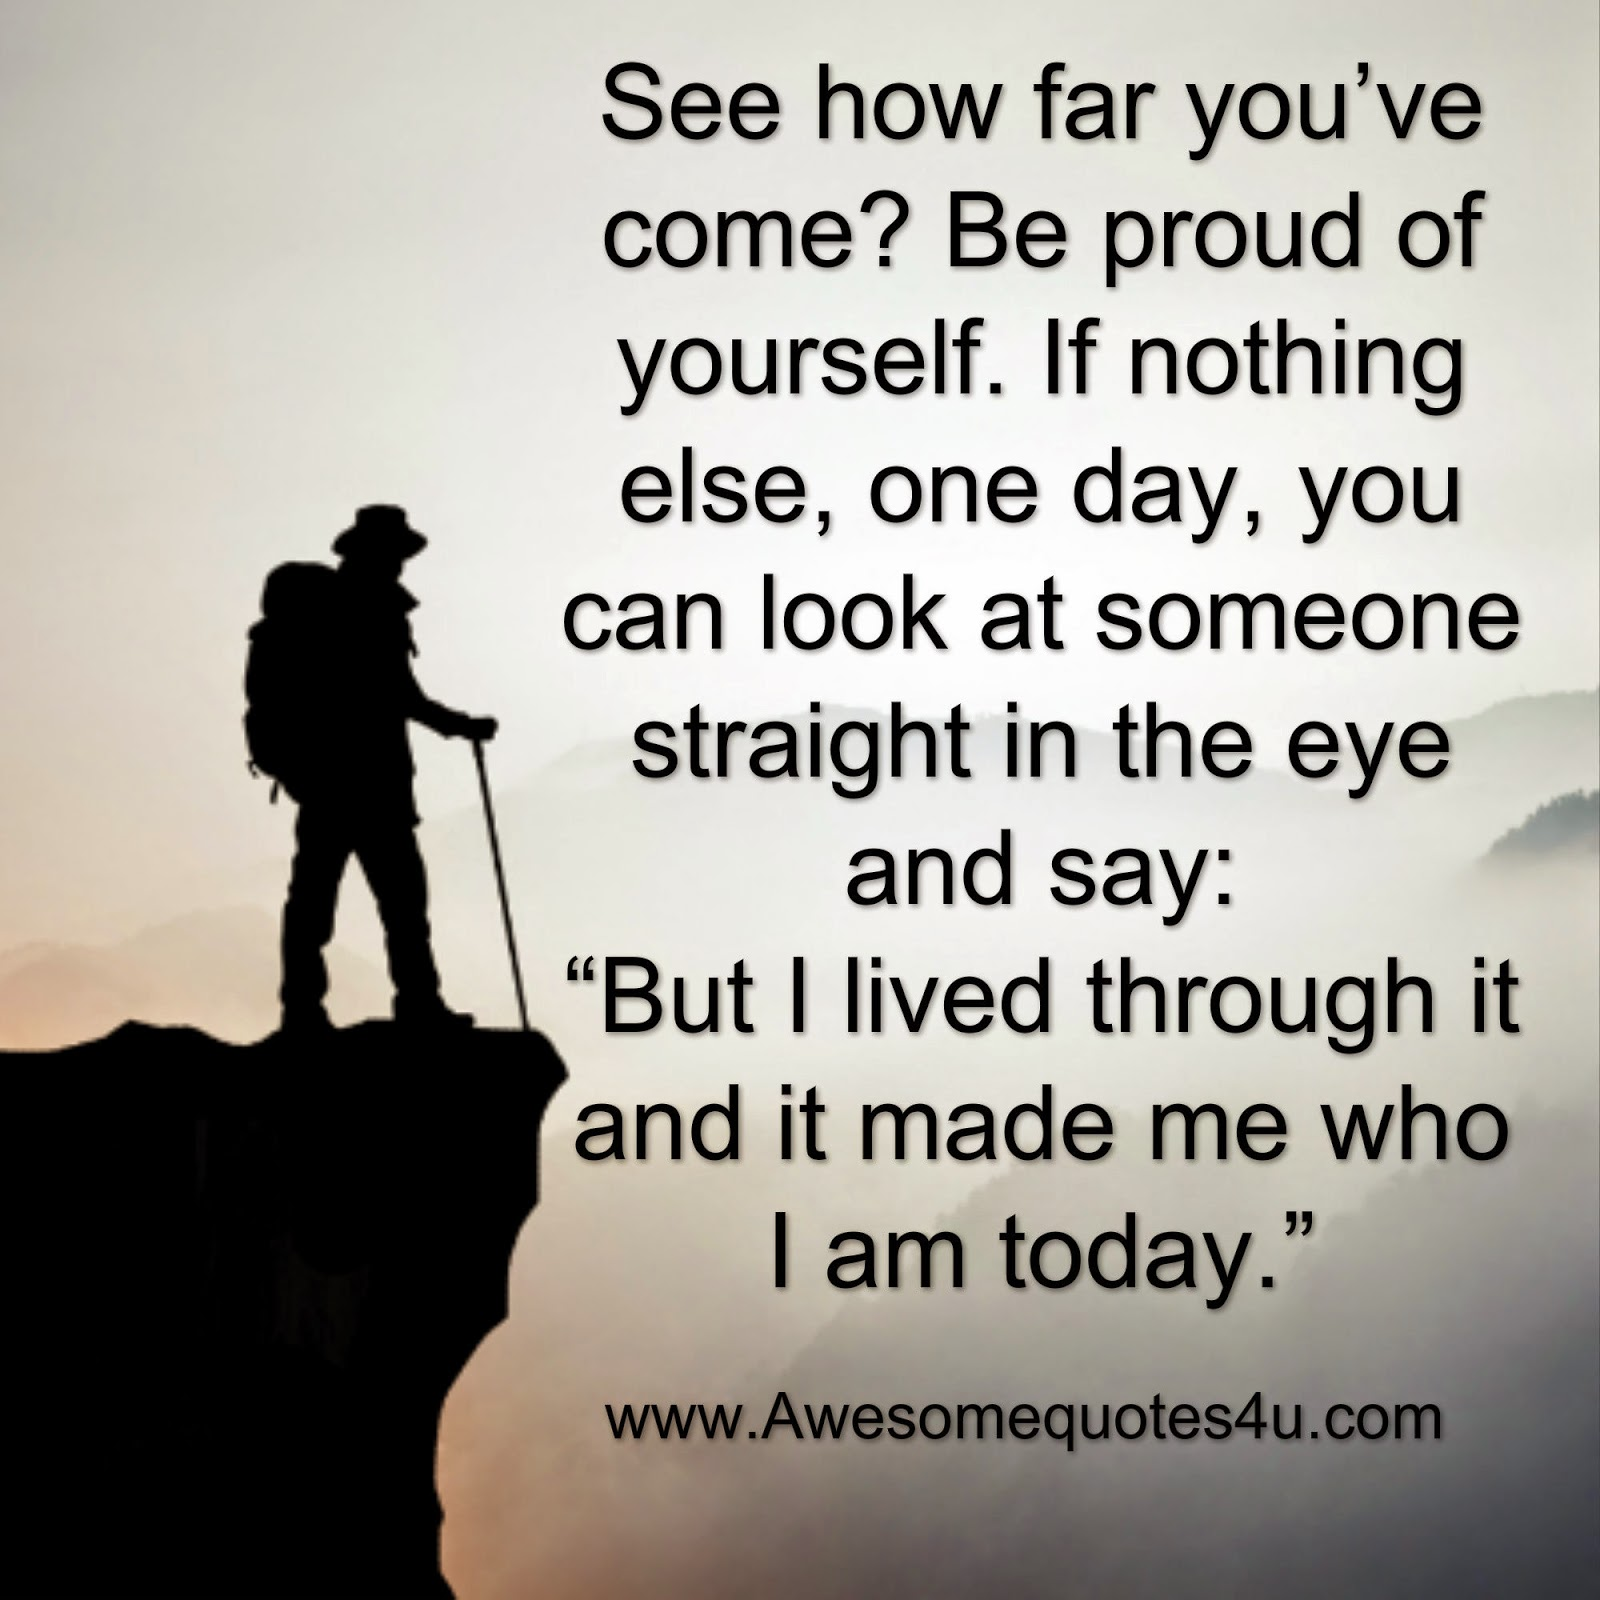 Quotes About Yourself (497 quotes)